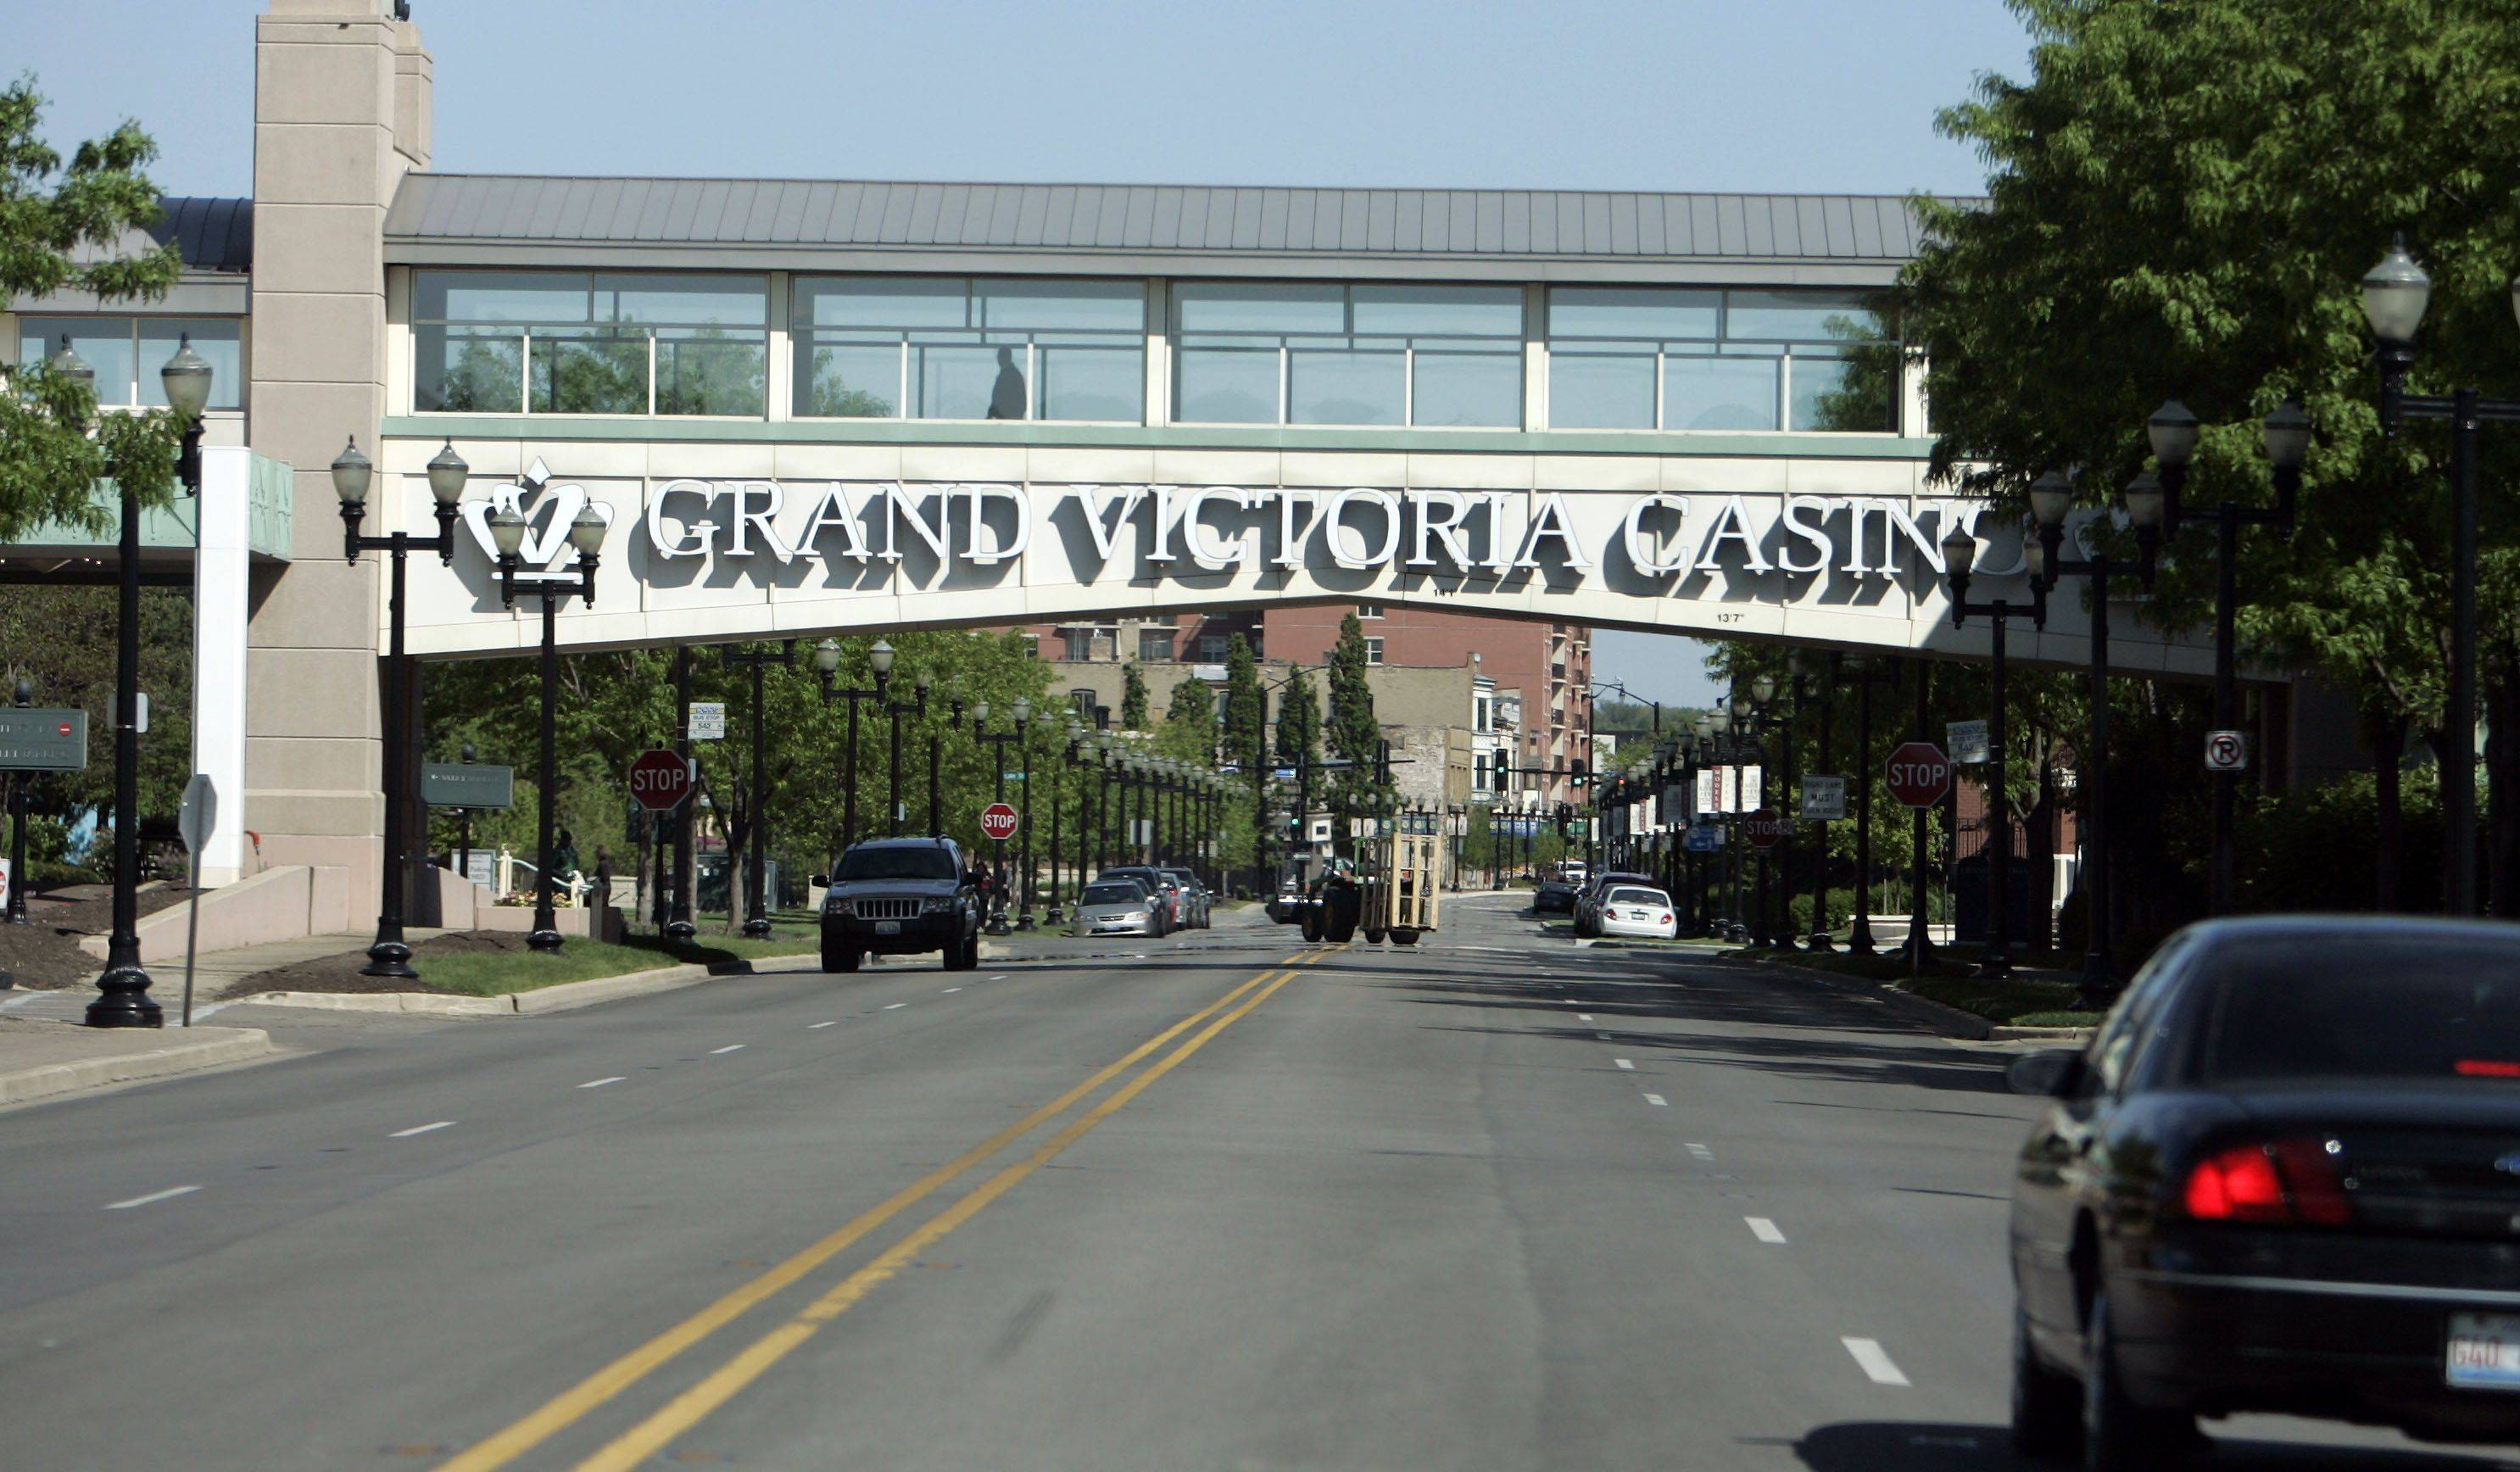 Under the gambling expansion legislation being considered by lawmakers, existing casinos each would be allowed to add 800 new spots to gamble. But with their revenues from their current offerings already dropping and the rights to those spots costing big bucks, existing casinos might take a pass on expanding, an industry representative said Thursday.